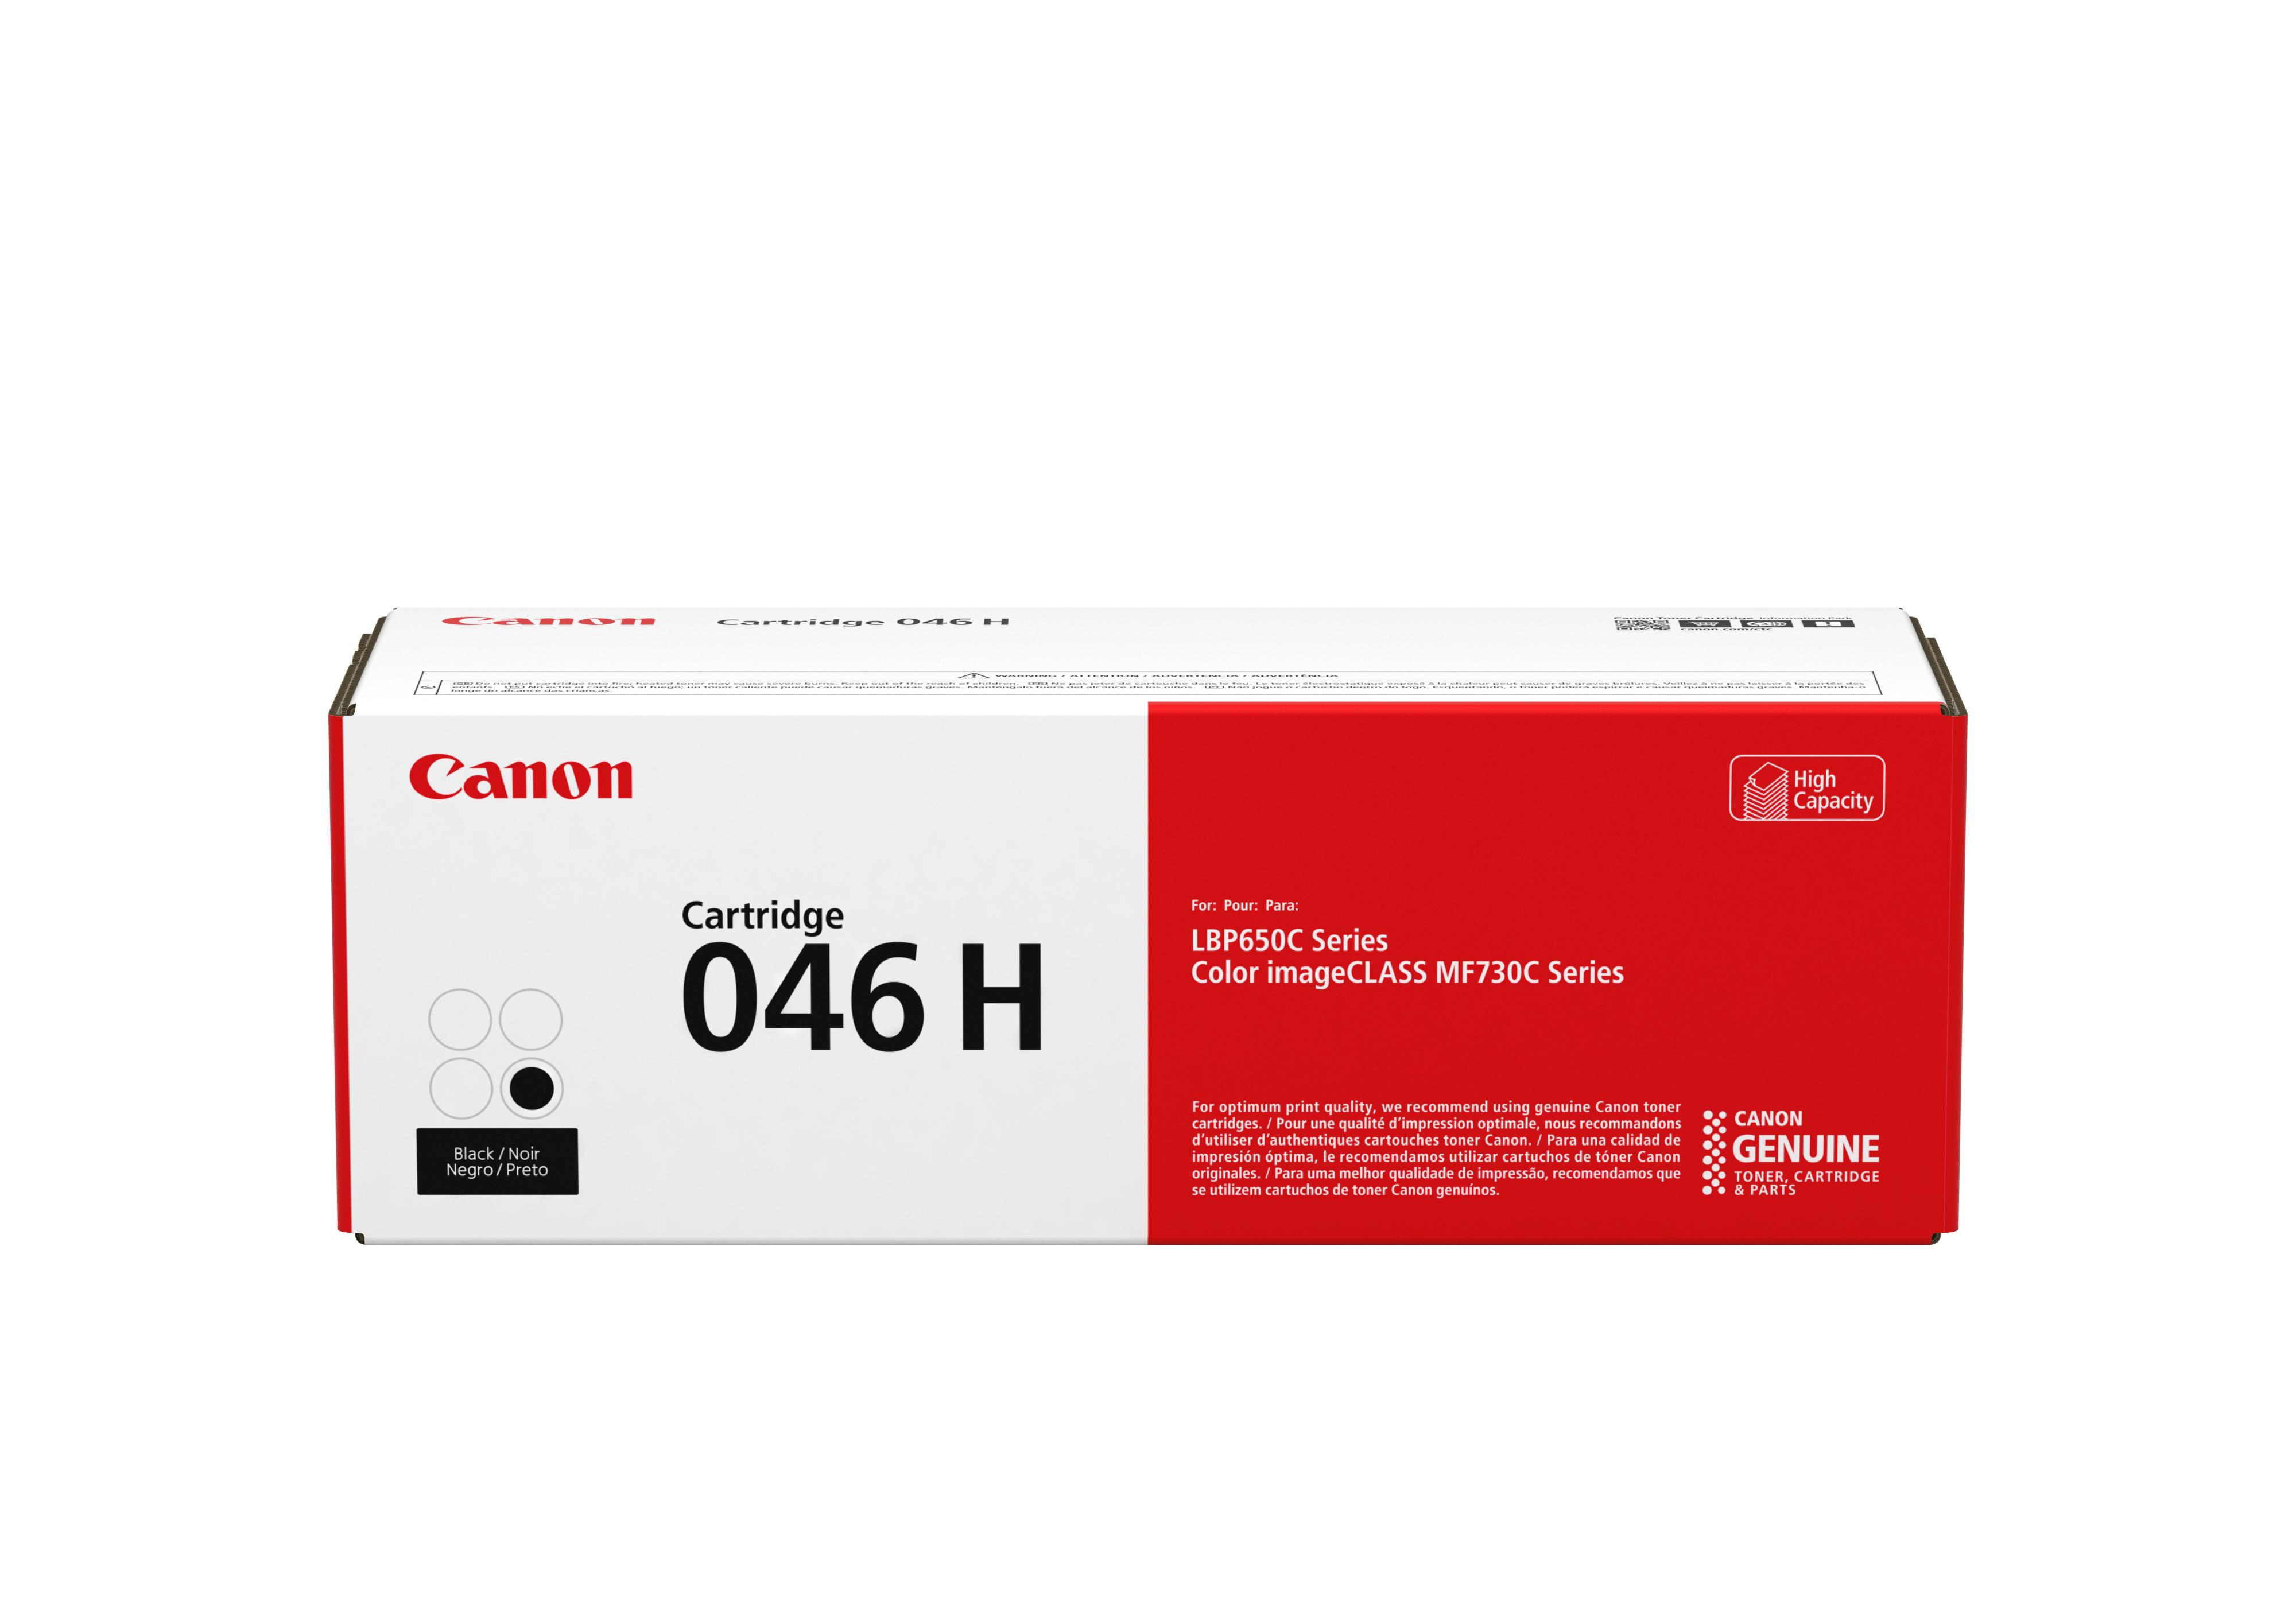 Global Cartridges 046 High Yield Compatible Toner Cartridges Set with Addional Black Replacement for Canon imageCLASS LBP654CDW,654CFW;MFC 731CDW,733CDW 735CDW;i-SENSYS LBP653CDW,654CW